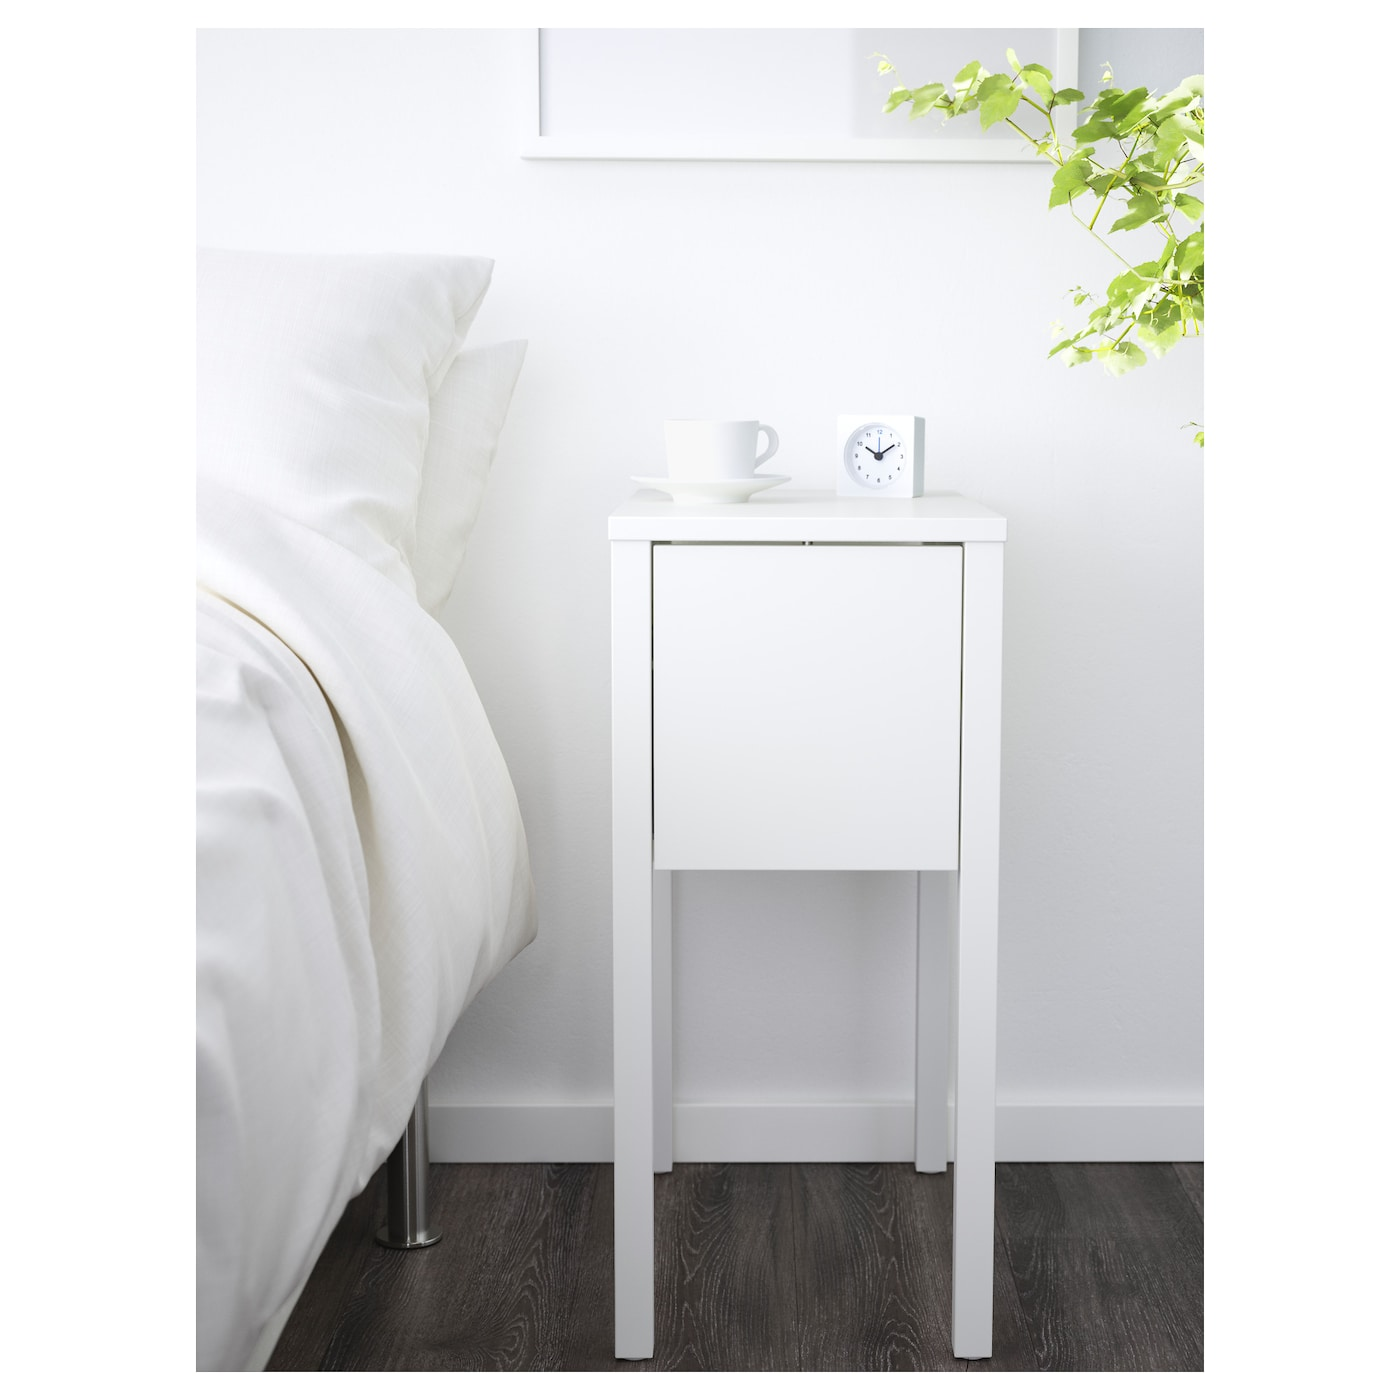 ikea nordli bedside table on the hidden shelf is room for an extension